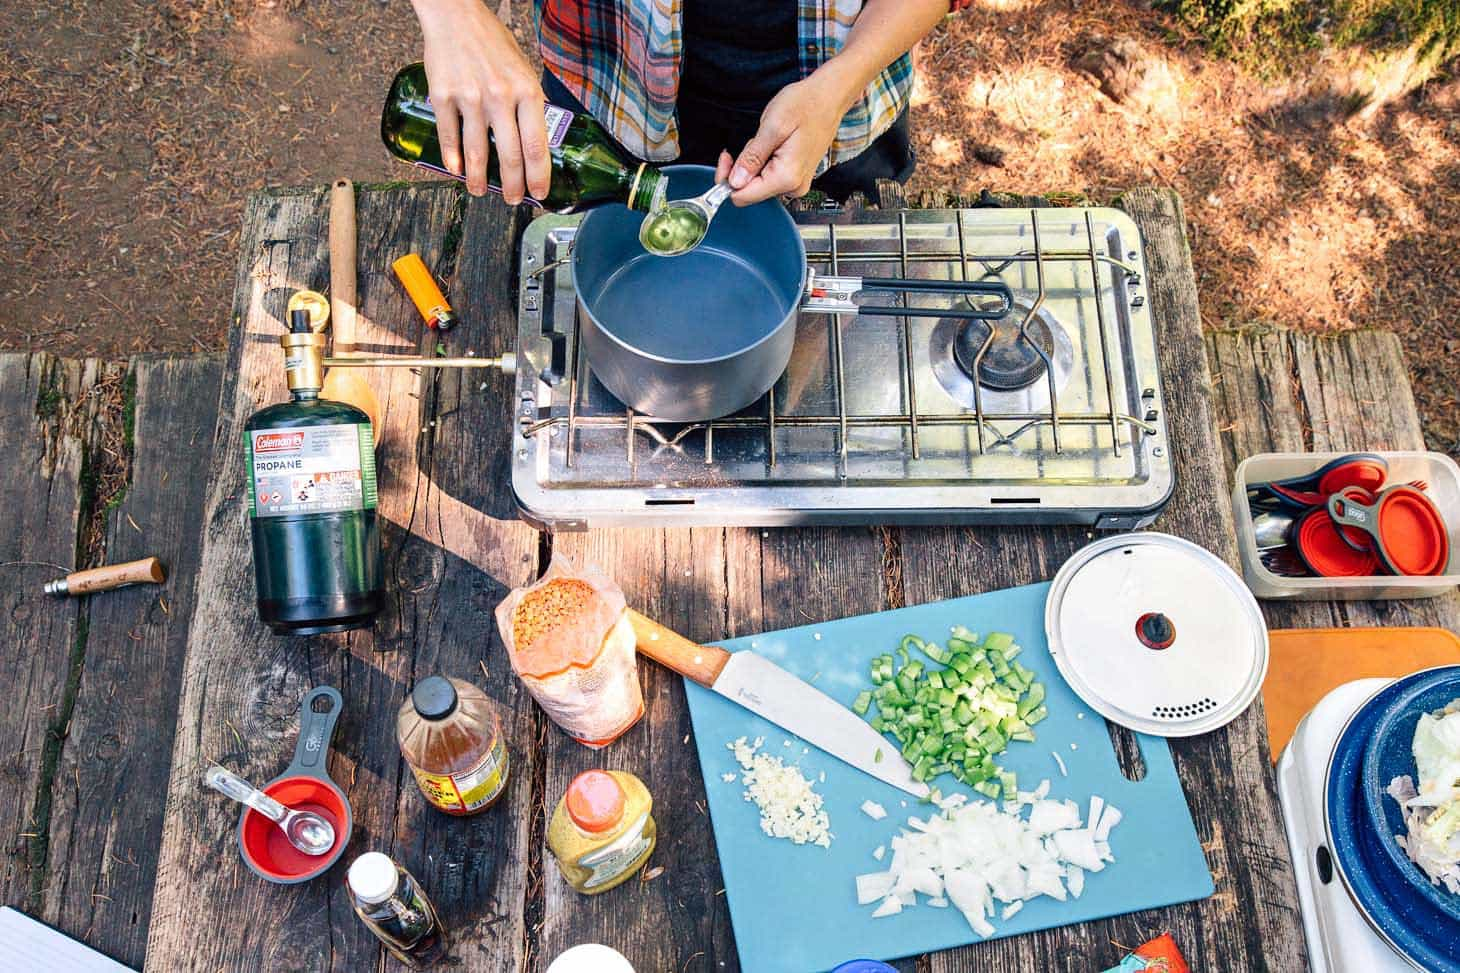 Red lentil sloppy joes ingredients spread out on a camping table